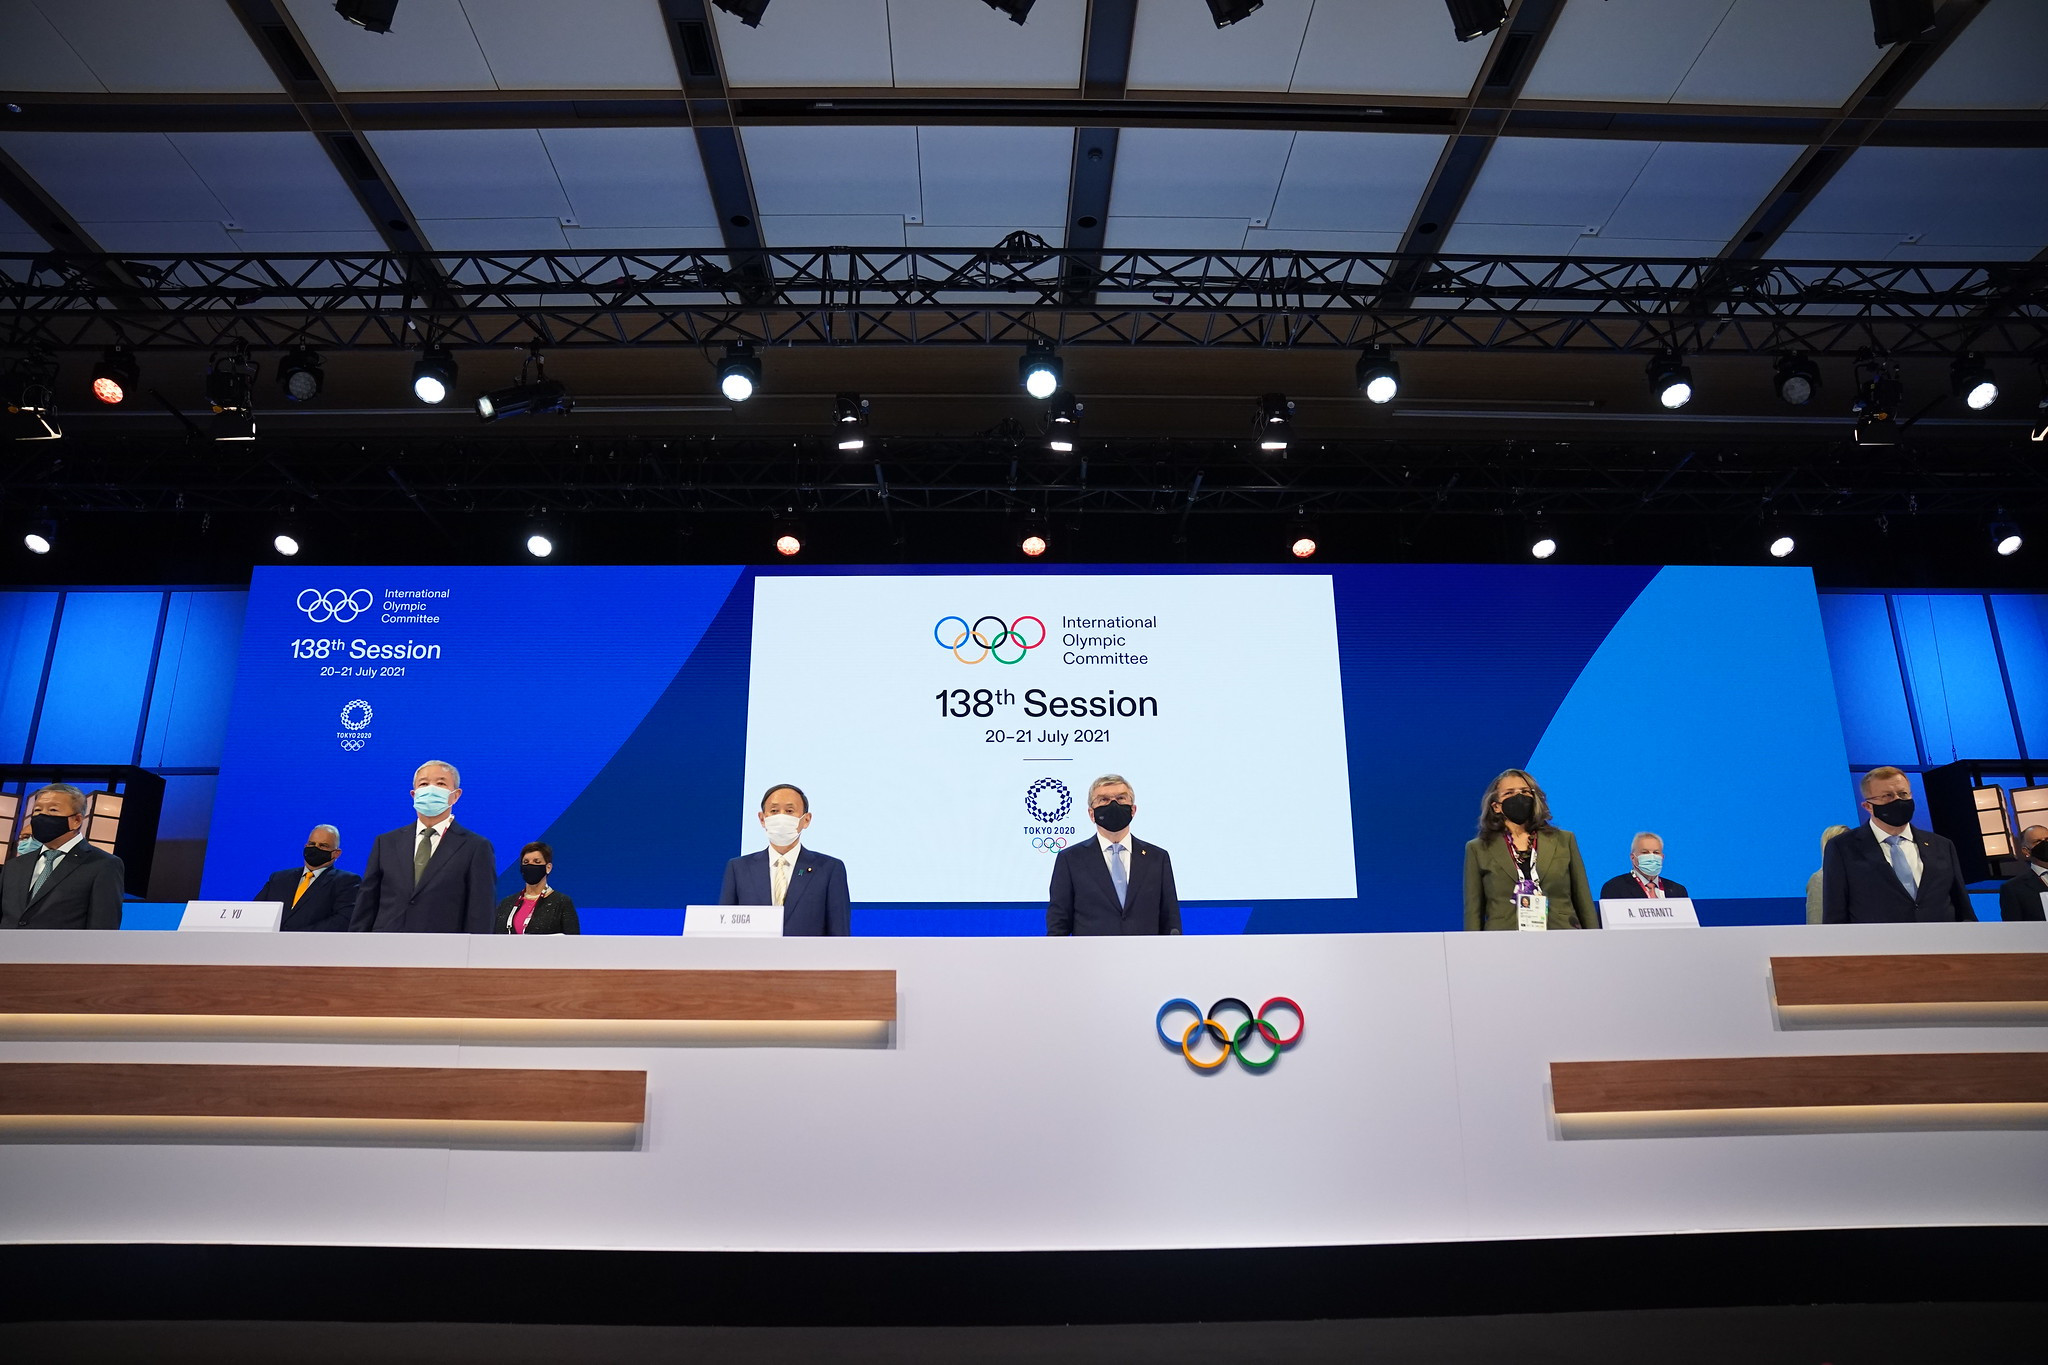 Japanese Prime Minister Yoshihide Suga attended the opening of the Session ©IOC